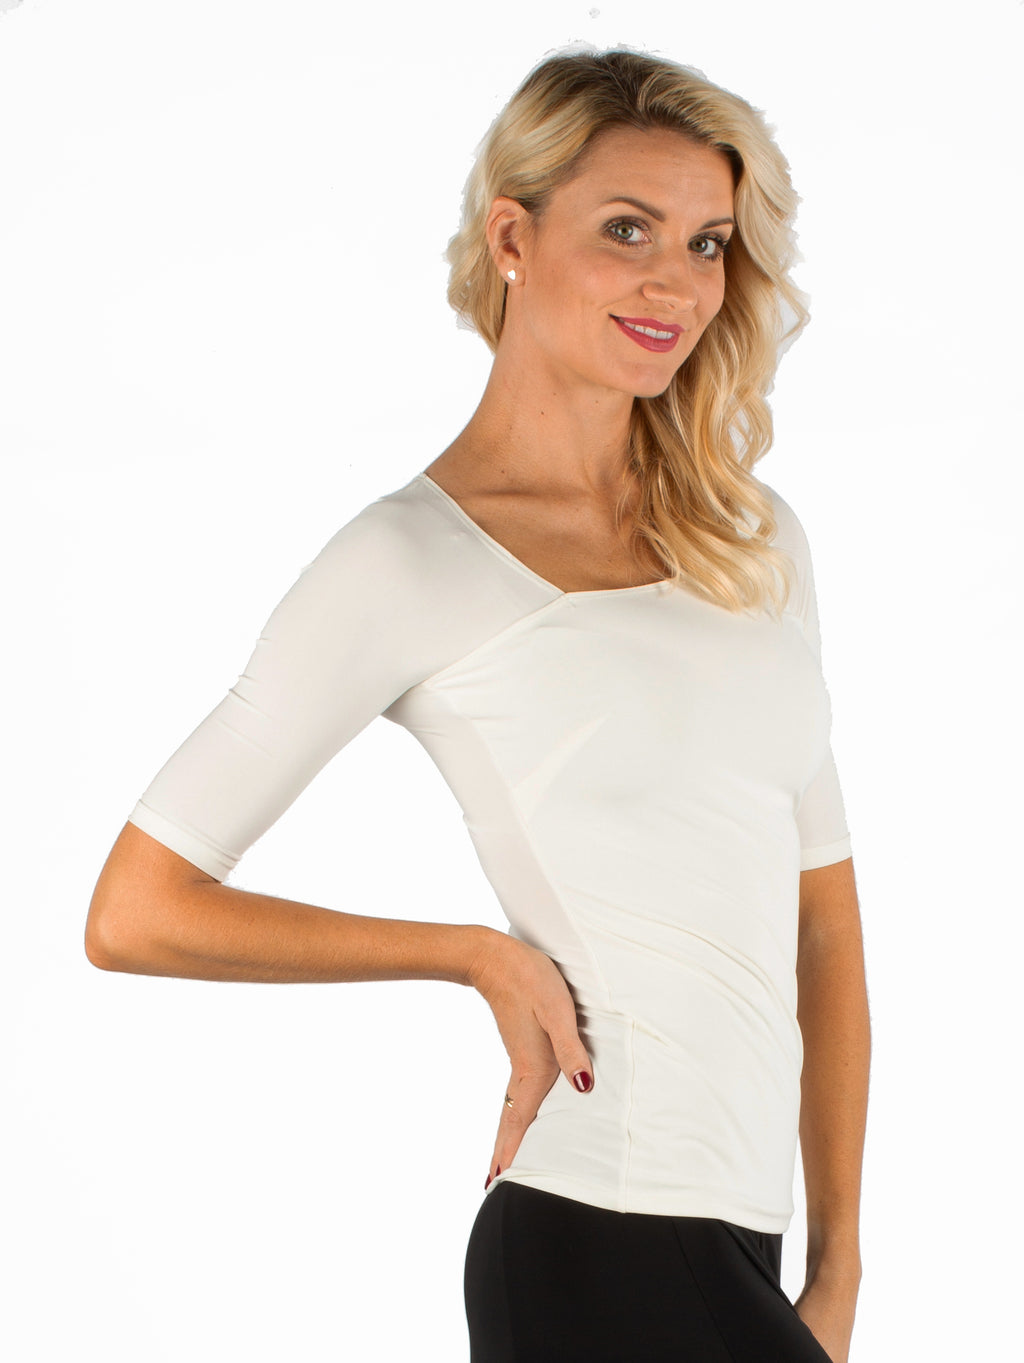 Miari women's ivory ballroom dance top with asymmetrical neckline and elbow length half-sleeves.